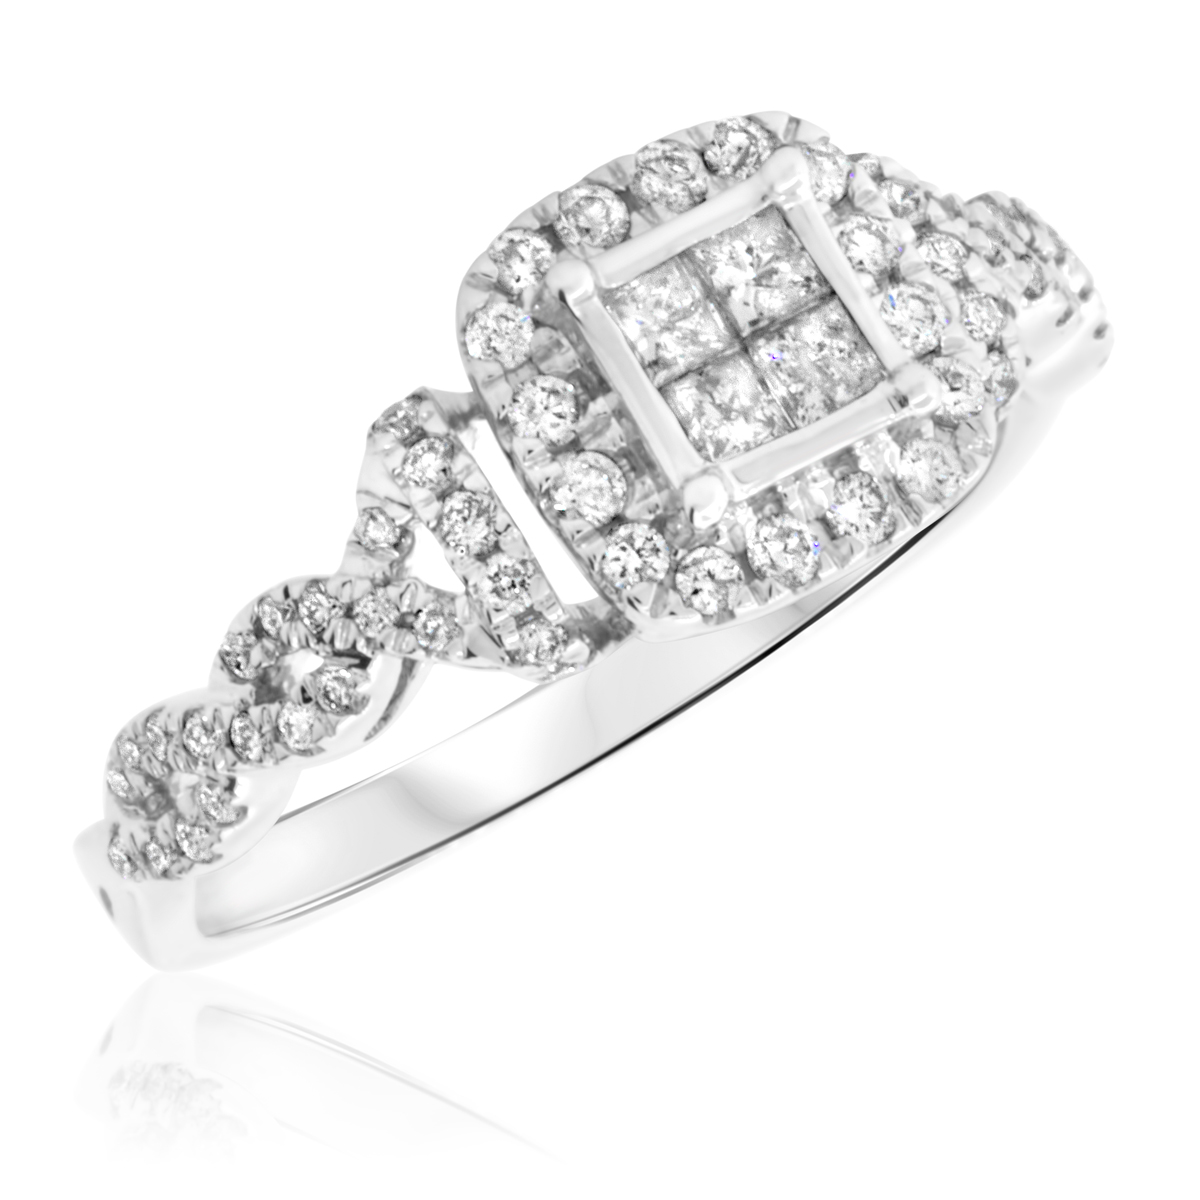 1/2 Carat T.W. Princess, Round Cut Diamond Ladies Engagement Ring 14K White Gold